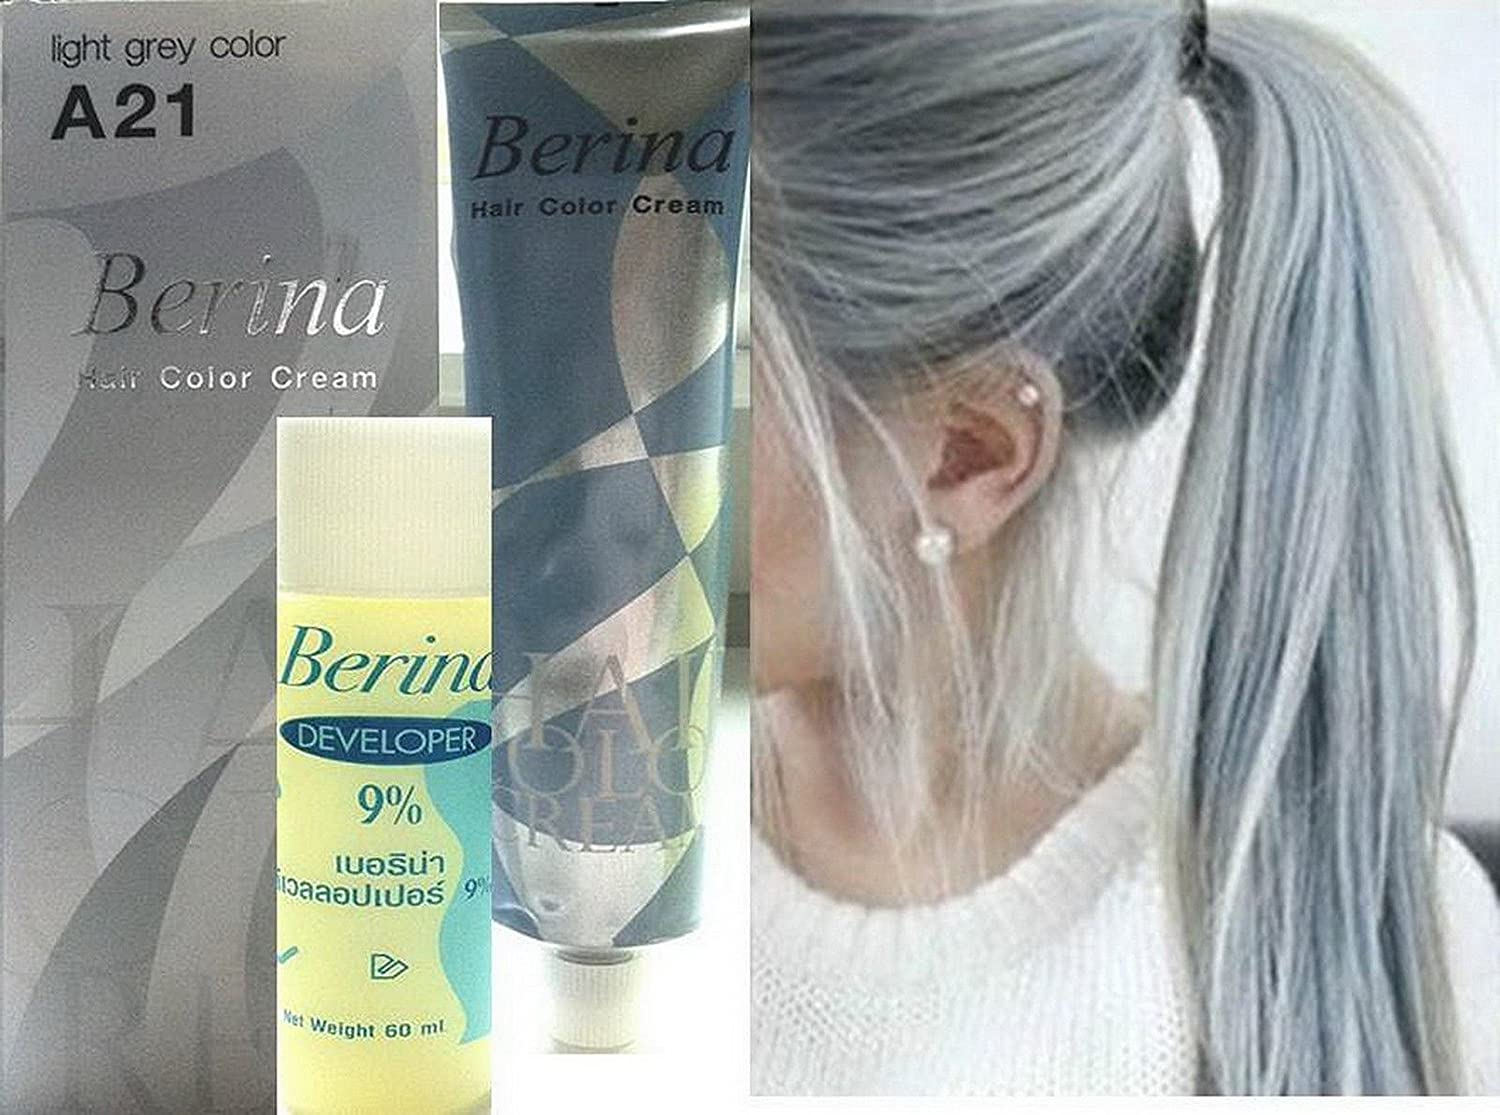 Exceptional Hair Colour Permanent Hair Cream Dye Light Ash Grey: Amazon.co.uk: Health U0026  Personal Care Good Ideas